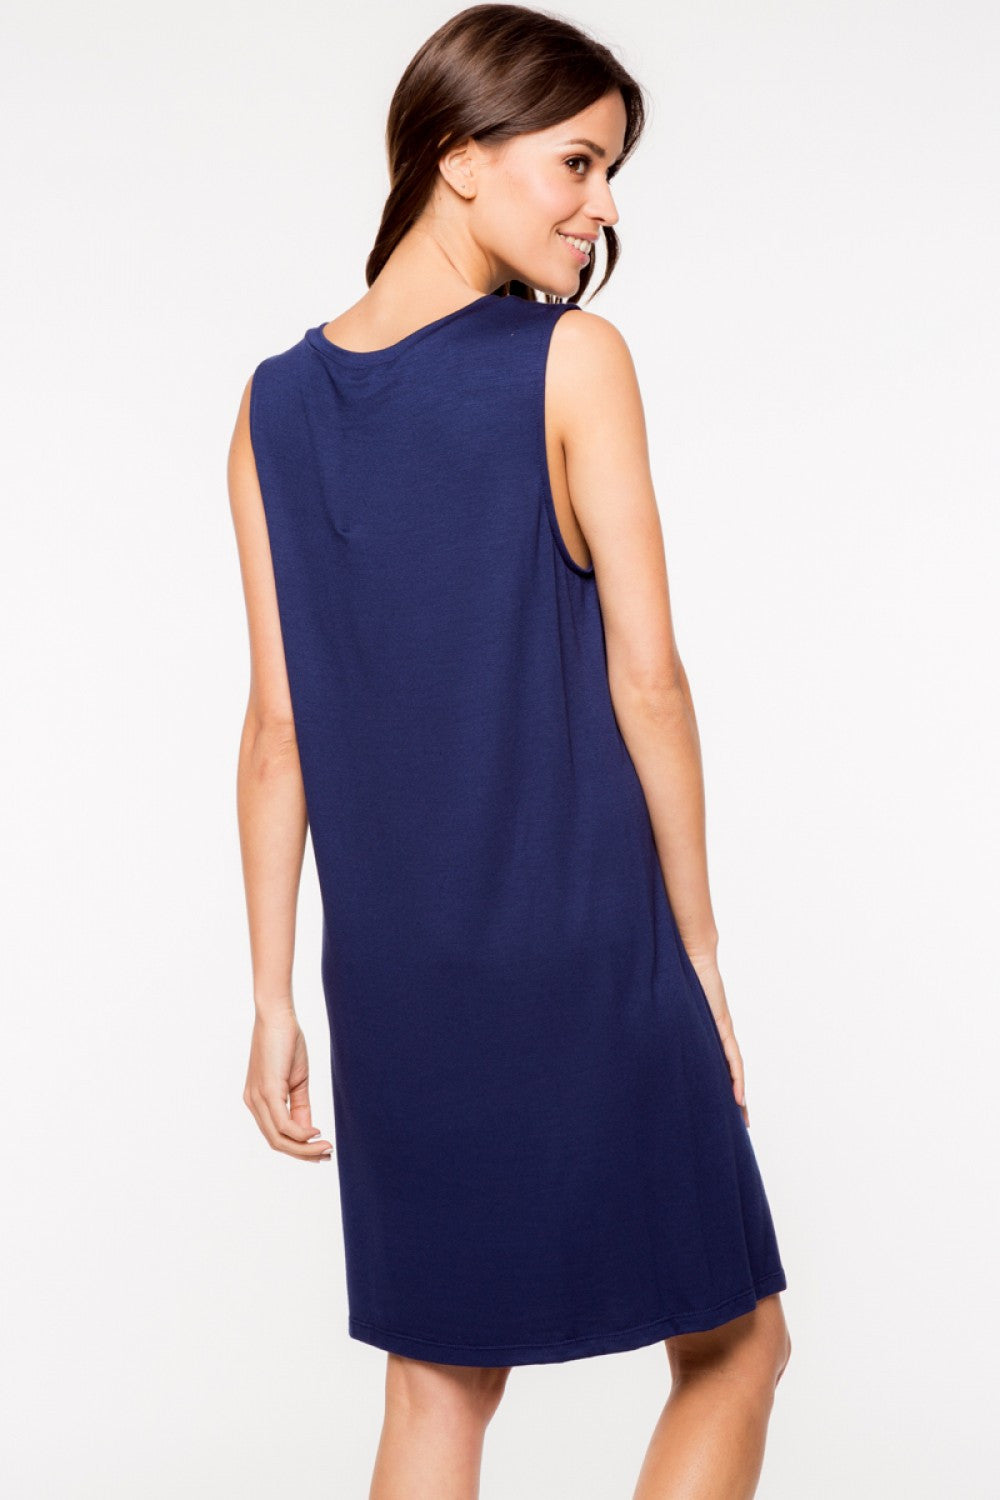 Everly: Bonnie Dress, Navy